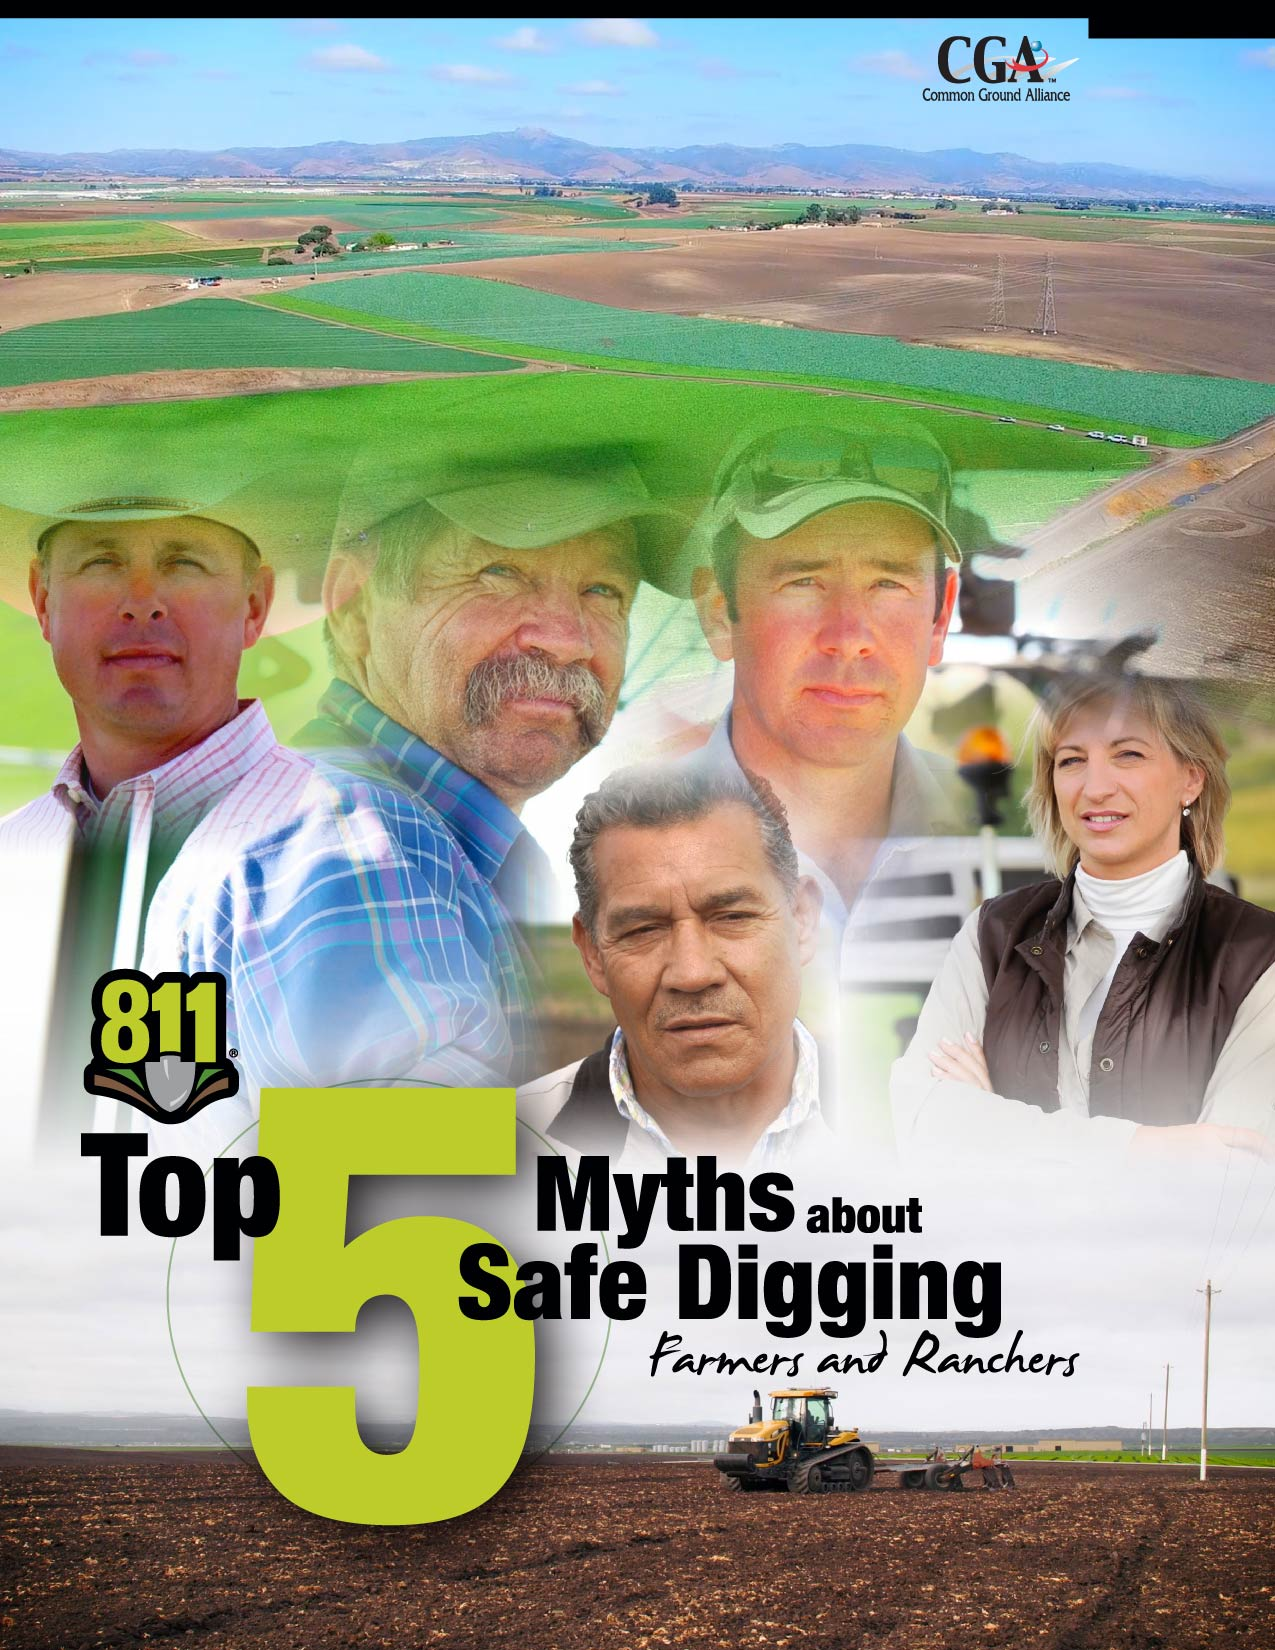 Top 5 Agriculture Myths About Safe Digging